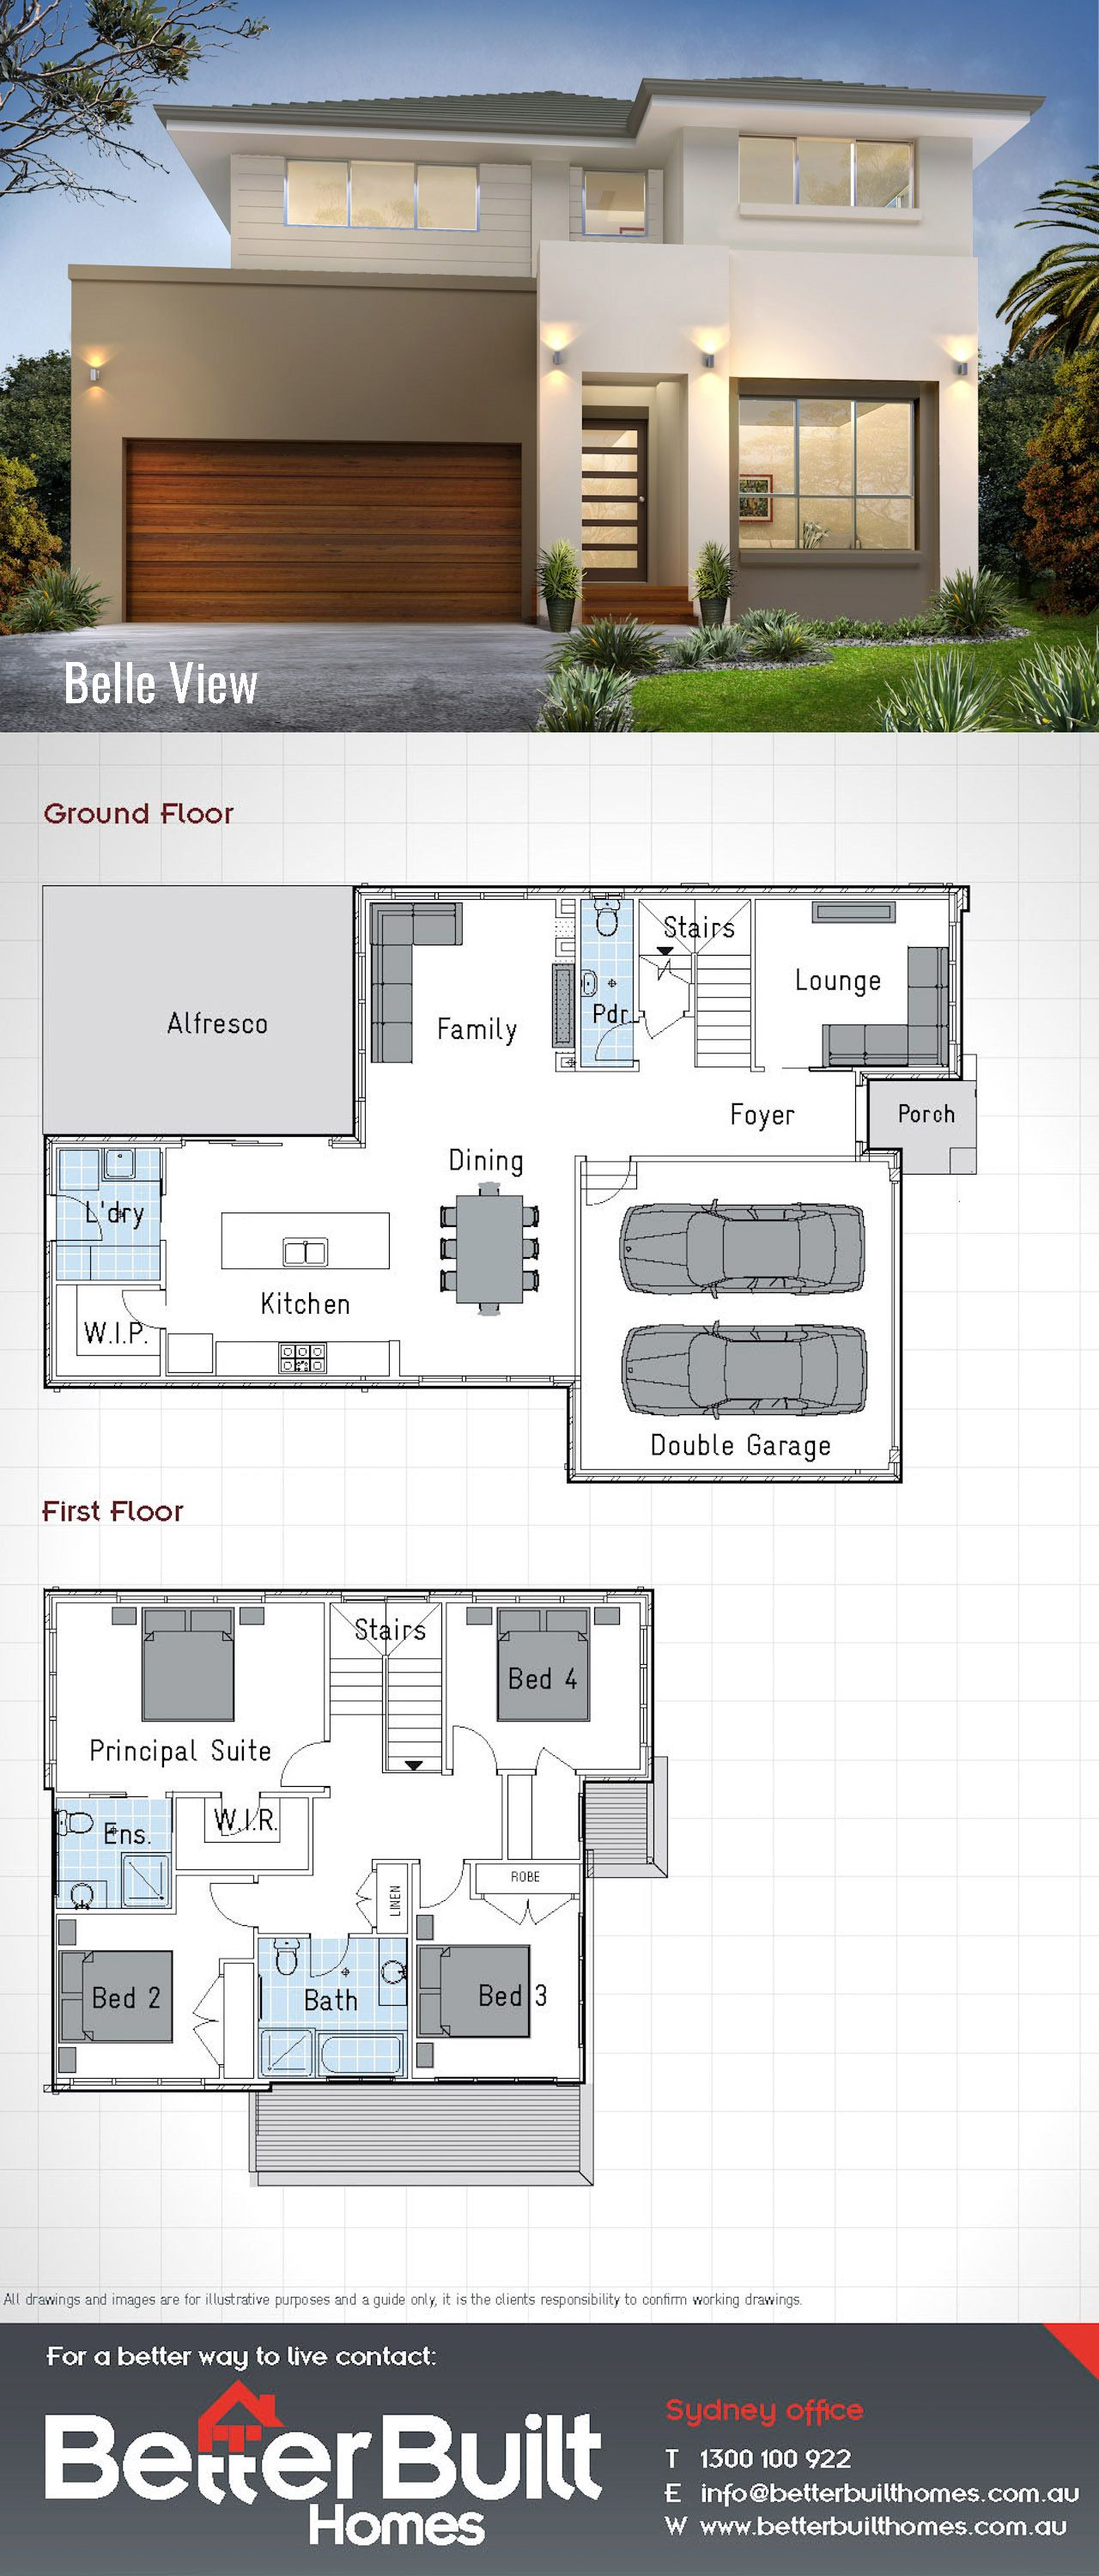 The Belle View 26 Double Storey House Design 232 Sq M 10 7m X 16 7m With 4 Large Bedrooms 2 Walk In Robes Double Storey House House Plans House Layouts